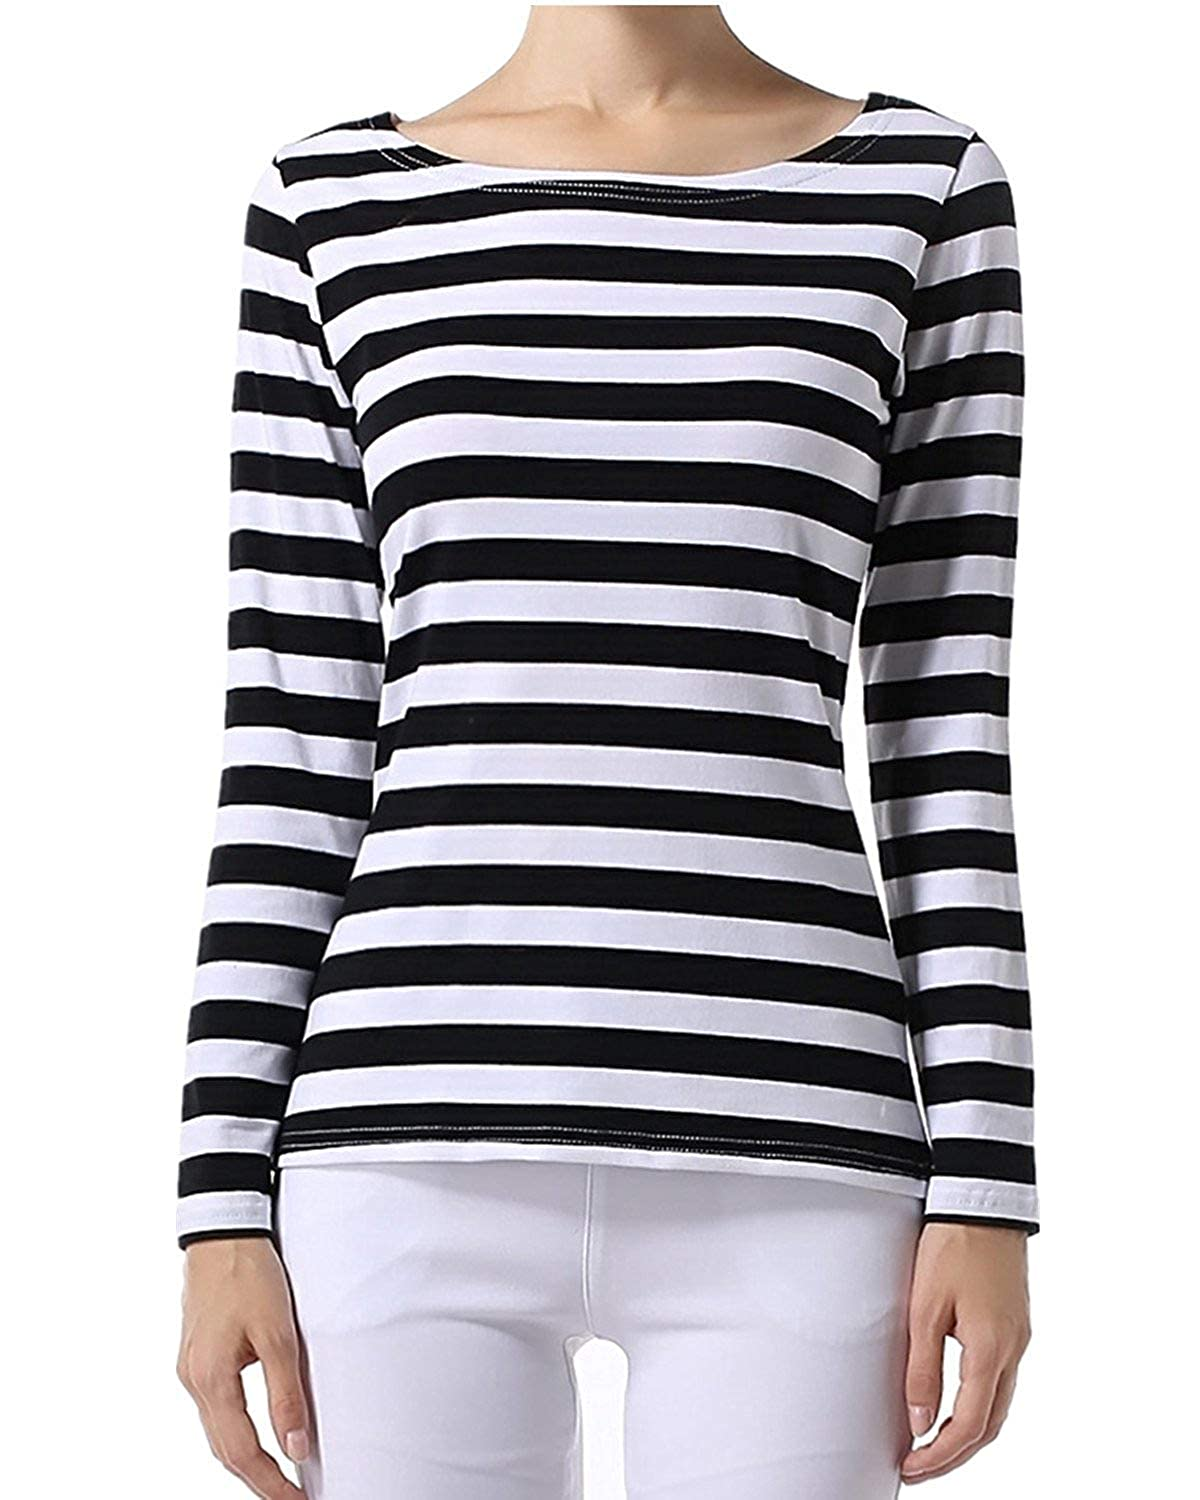 BIKATU Womens Casual T-Shirt Long Sleeve Round Neck Striped Halloween Cosplay Tops Shirts